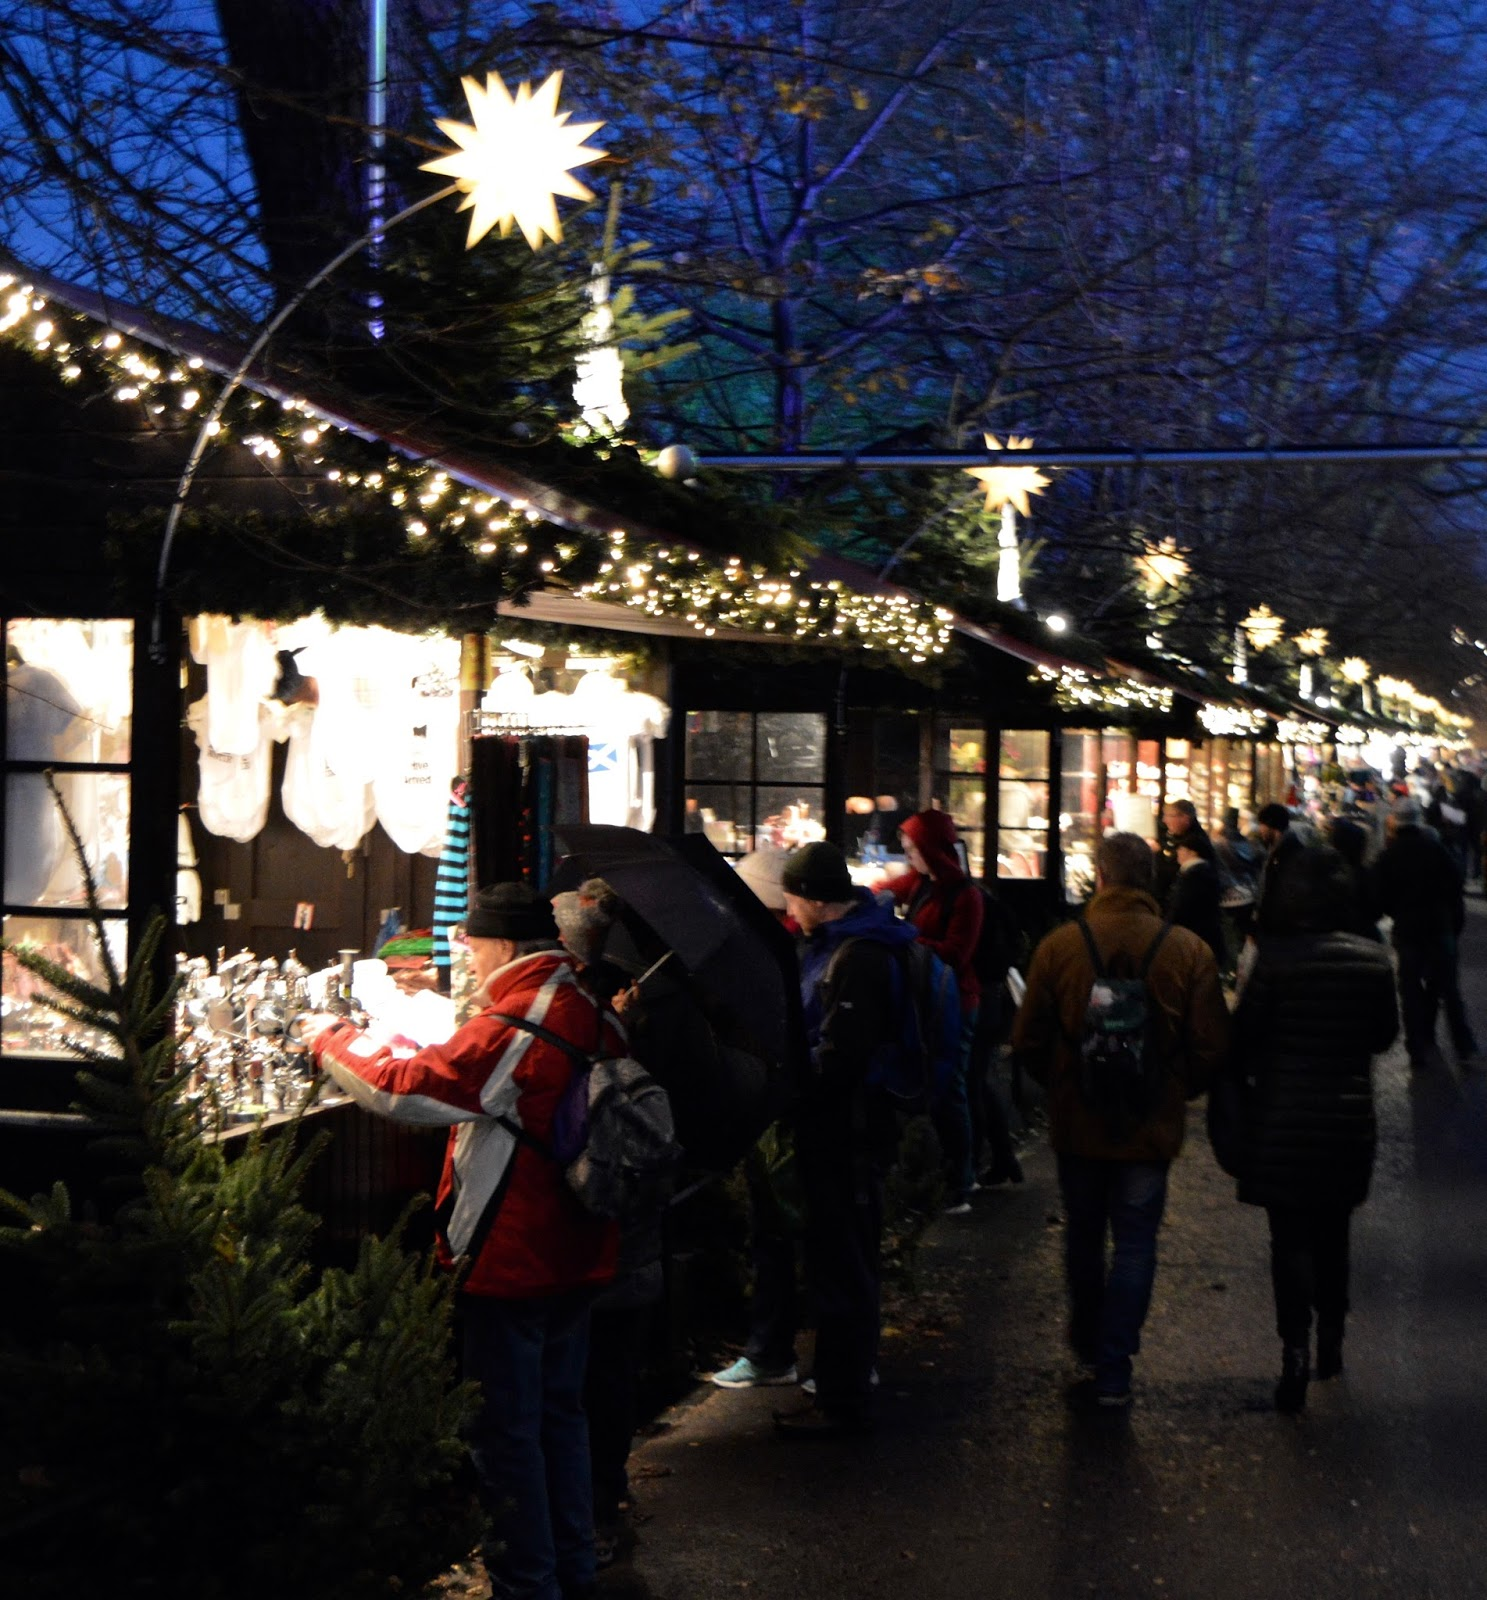 10 Reasons to Visit Edinburgh in December - Prince's Street Christmas Market